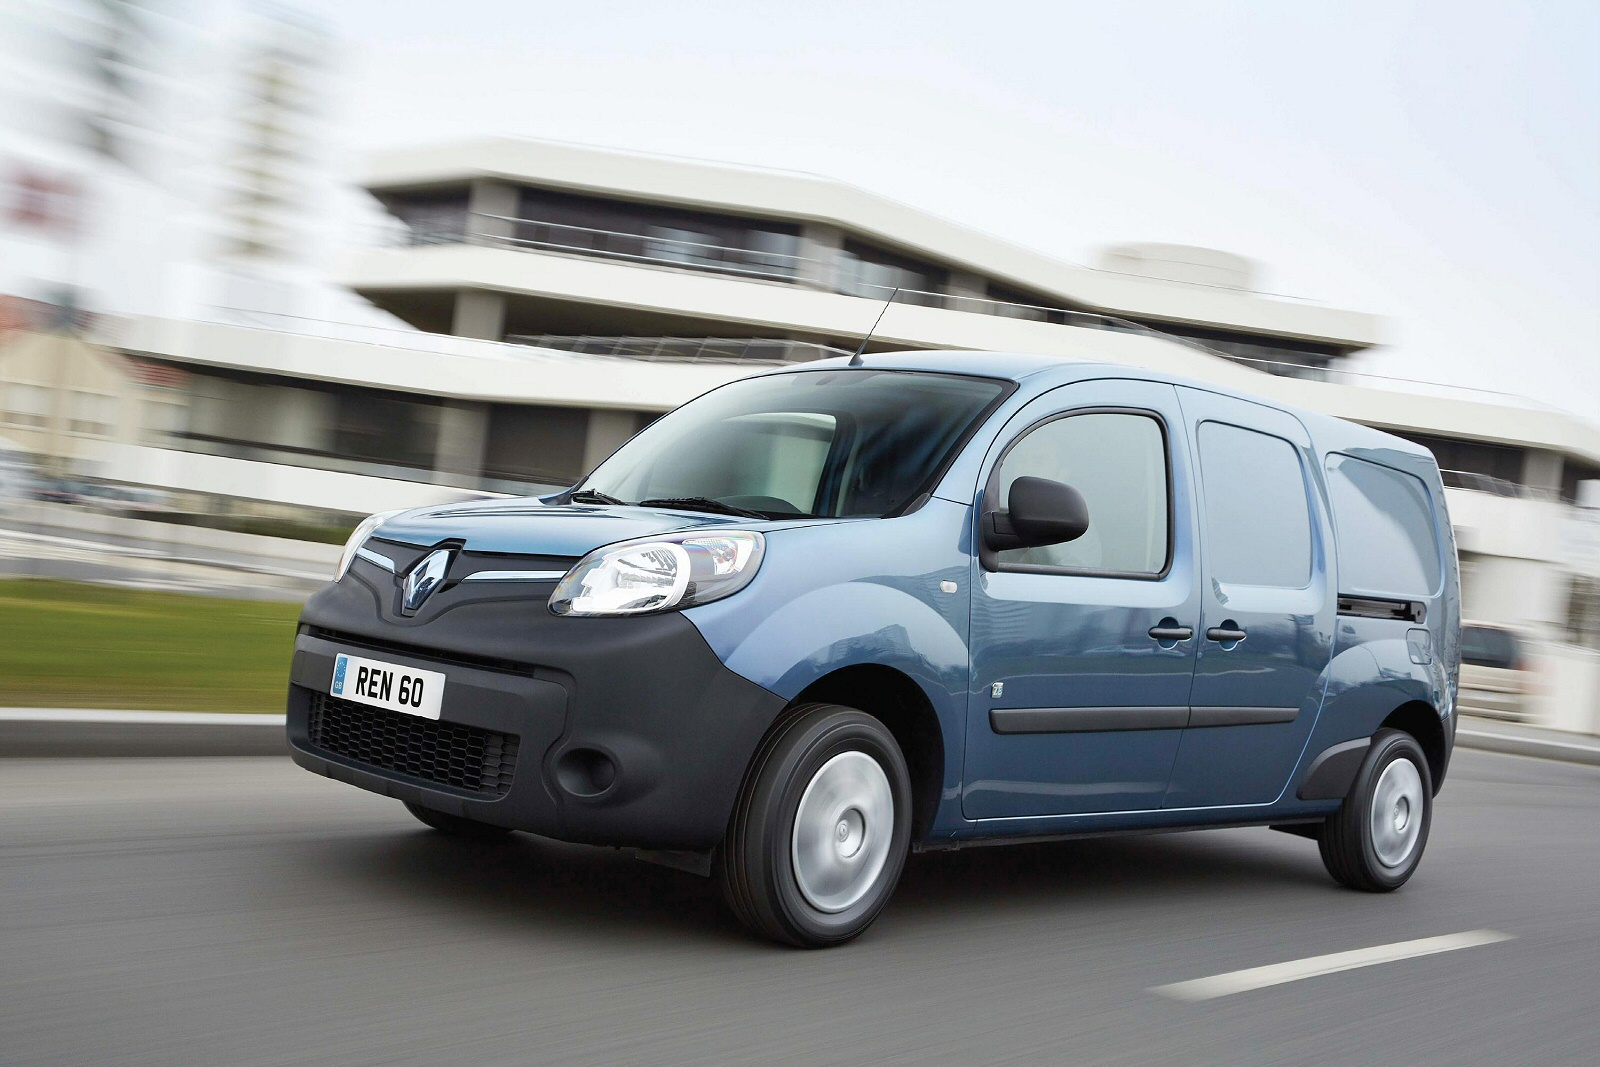 new renault kangoo maxi ze electric ll21 44kw 33kwh business crew van auto for sale bristol street. Black Bedroom Furniture Sets. Home Design Ideas